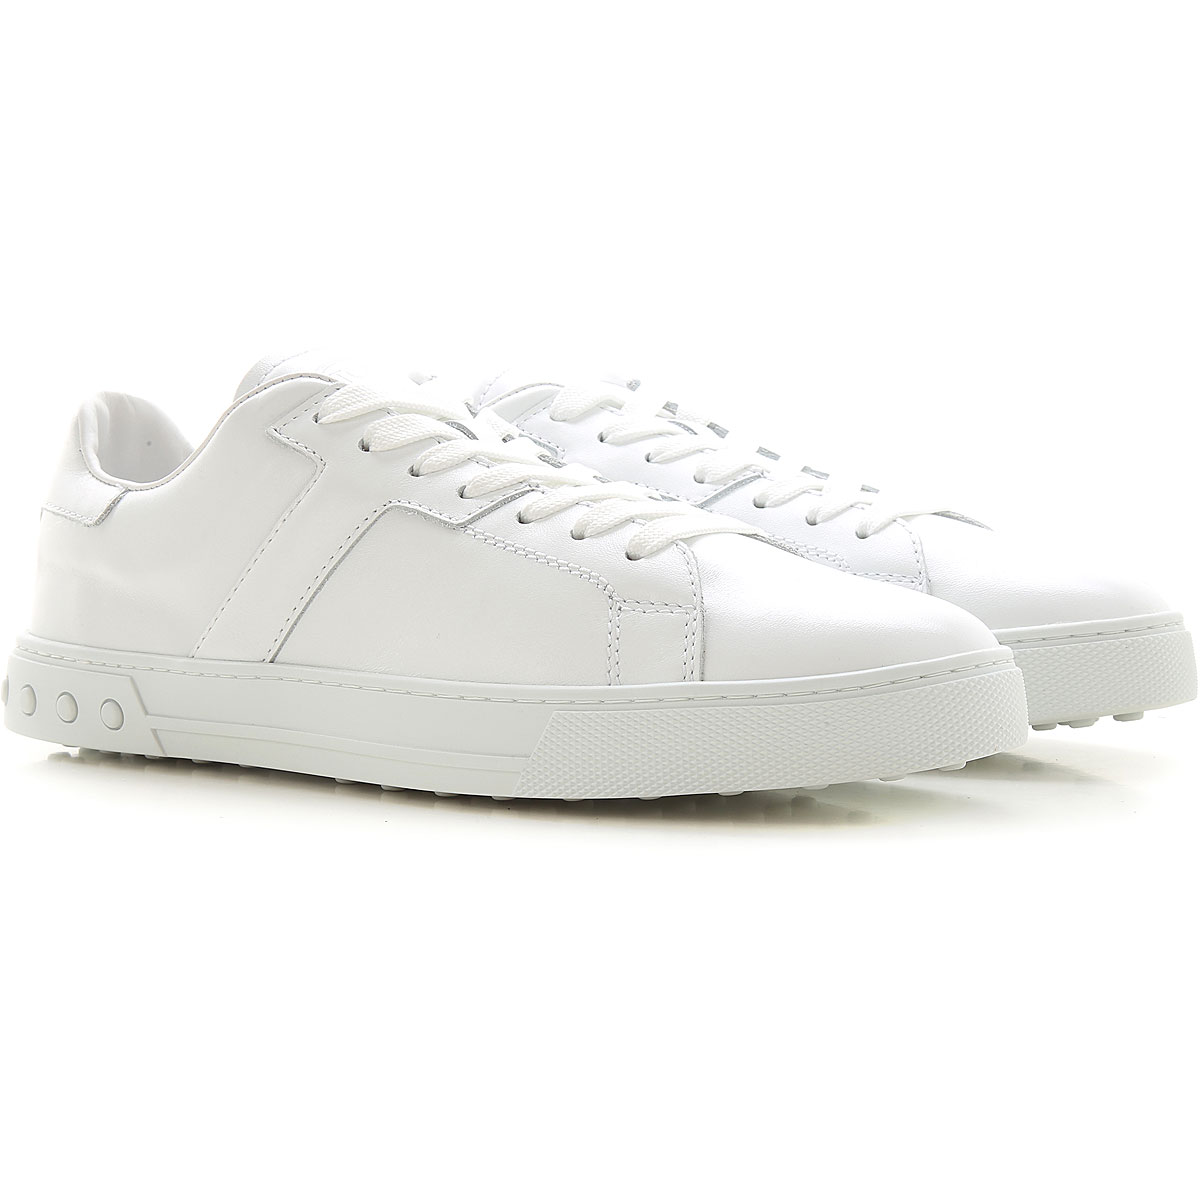 Tods Sneakers for Men, White, Leather, 2021, 10 10.5 11 12 6 6.5 7 7.5 8 8.5 9 9.5 from Tods